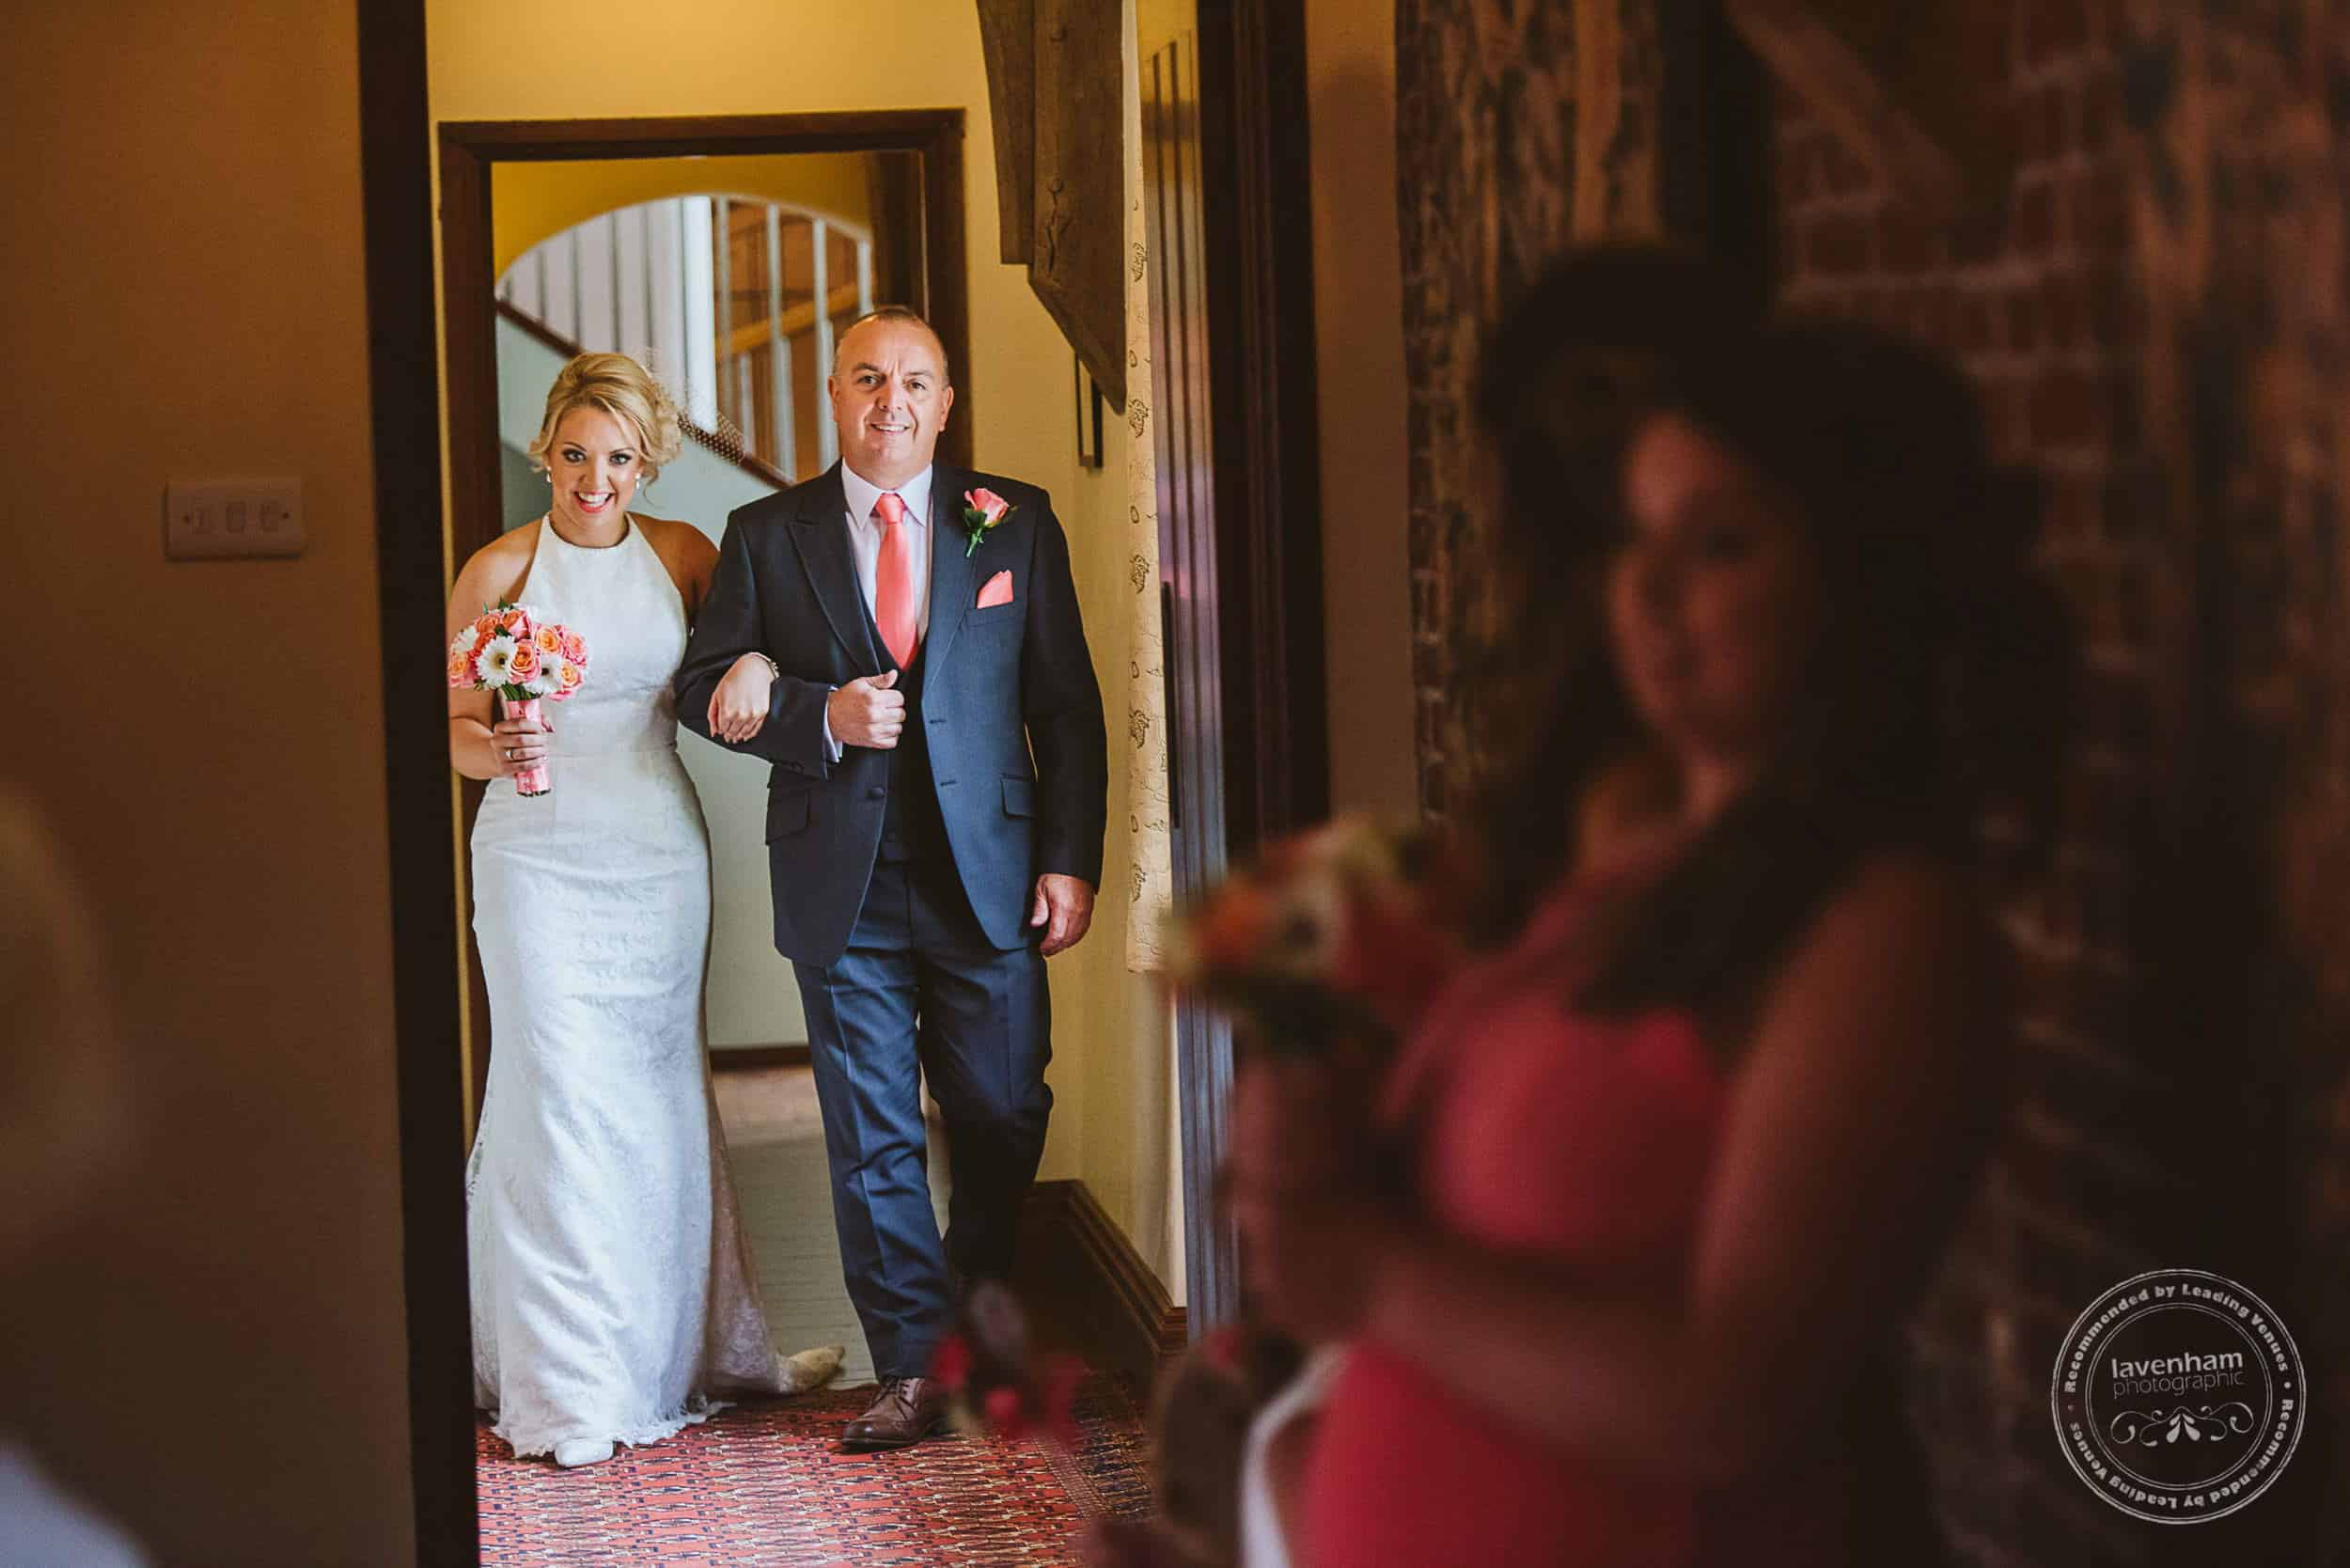 140717 Layer Marney Wedding Photography by Lavenham Photographic 035